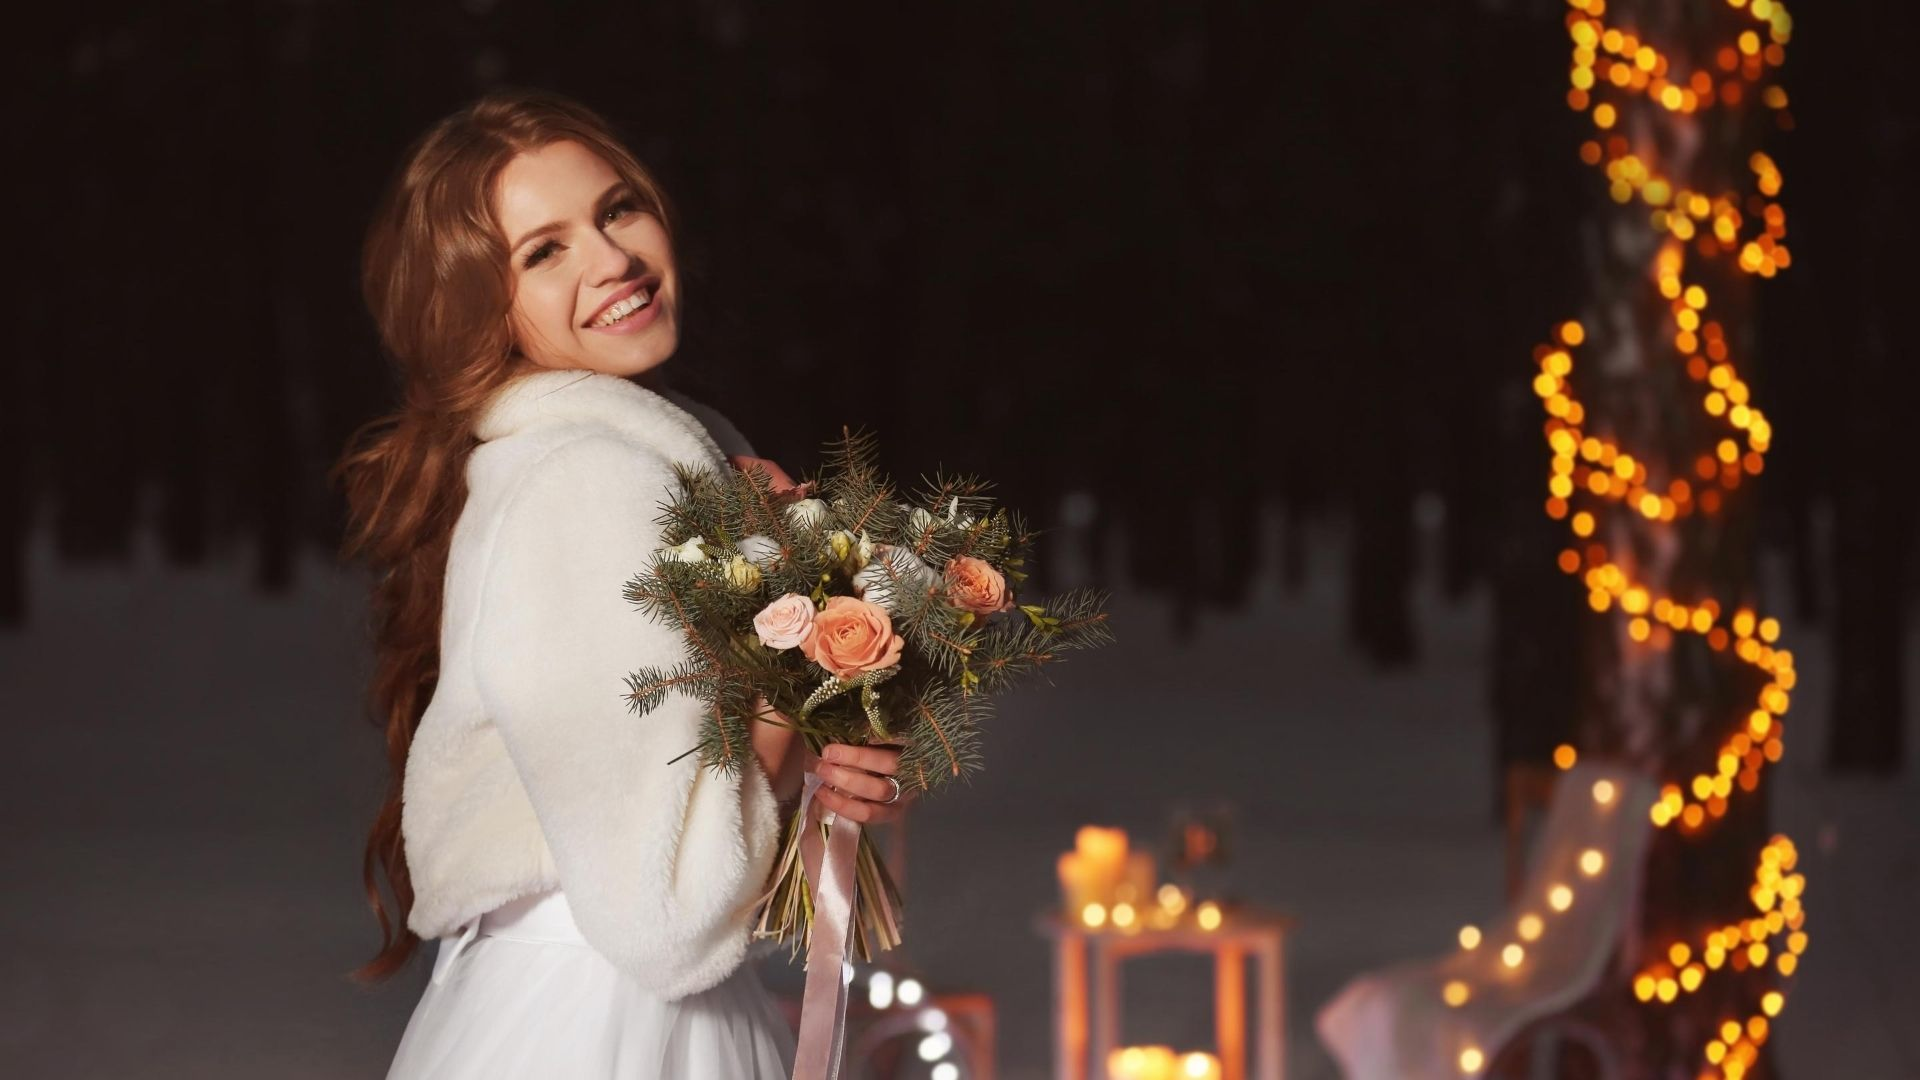 Woman wearing a fur evening coat over a hite dress holding a bouquet of flowers in her hand.